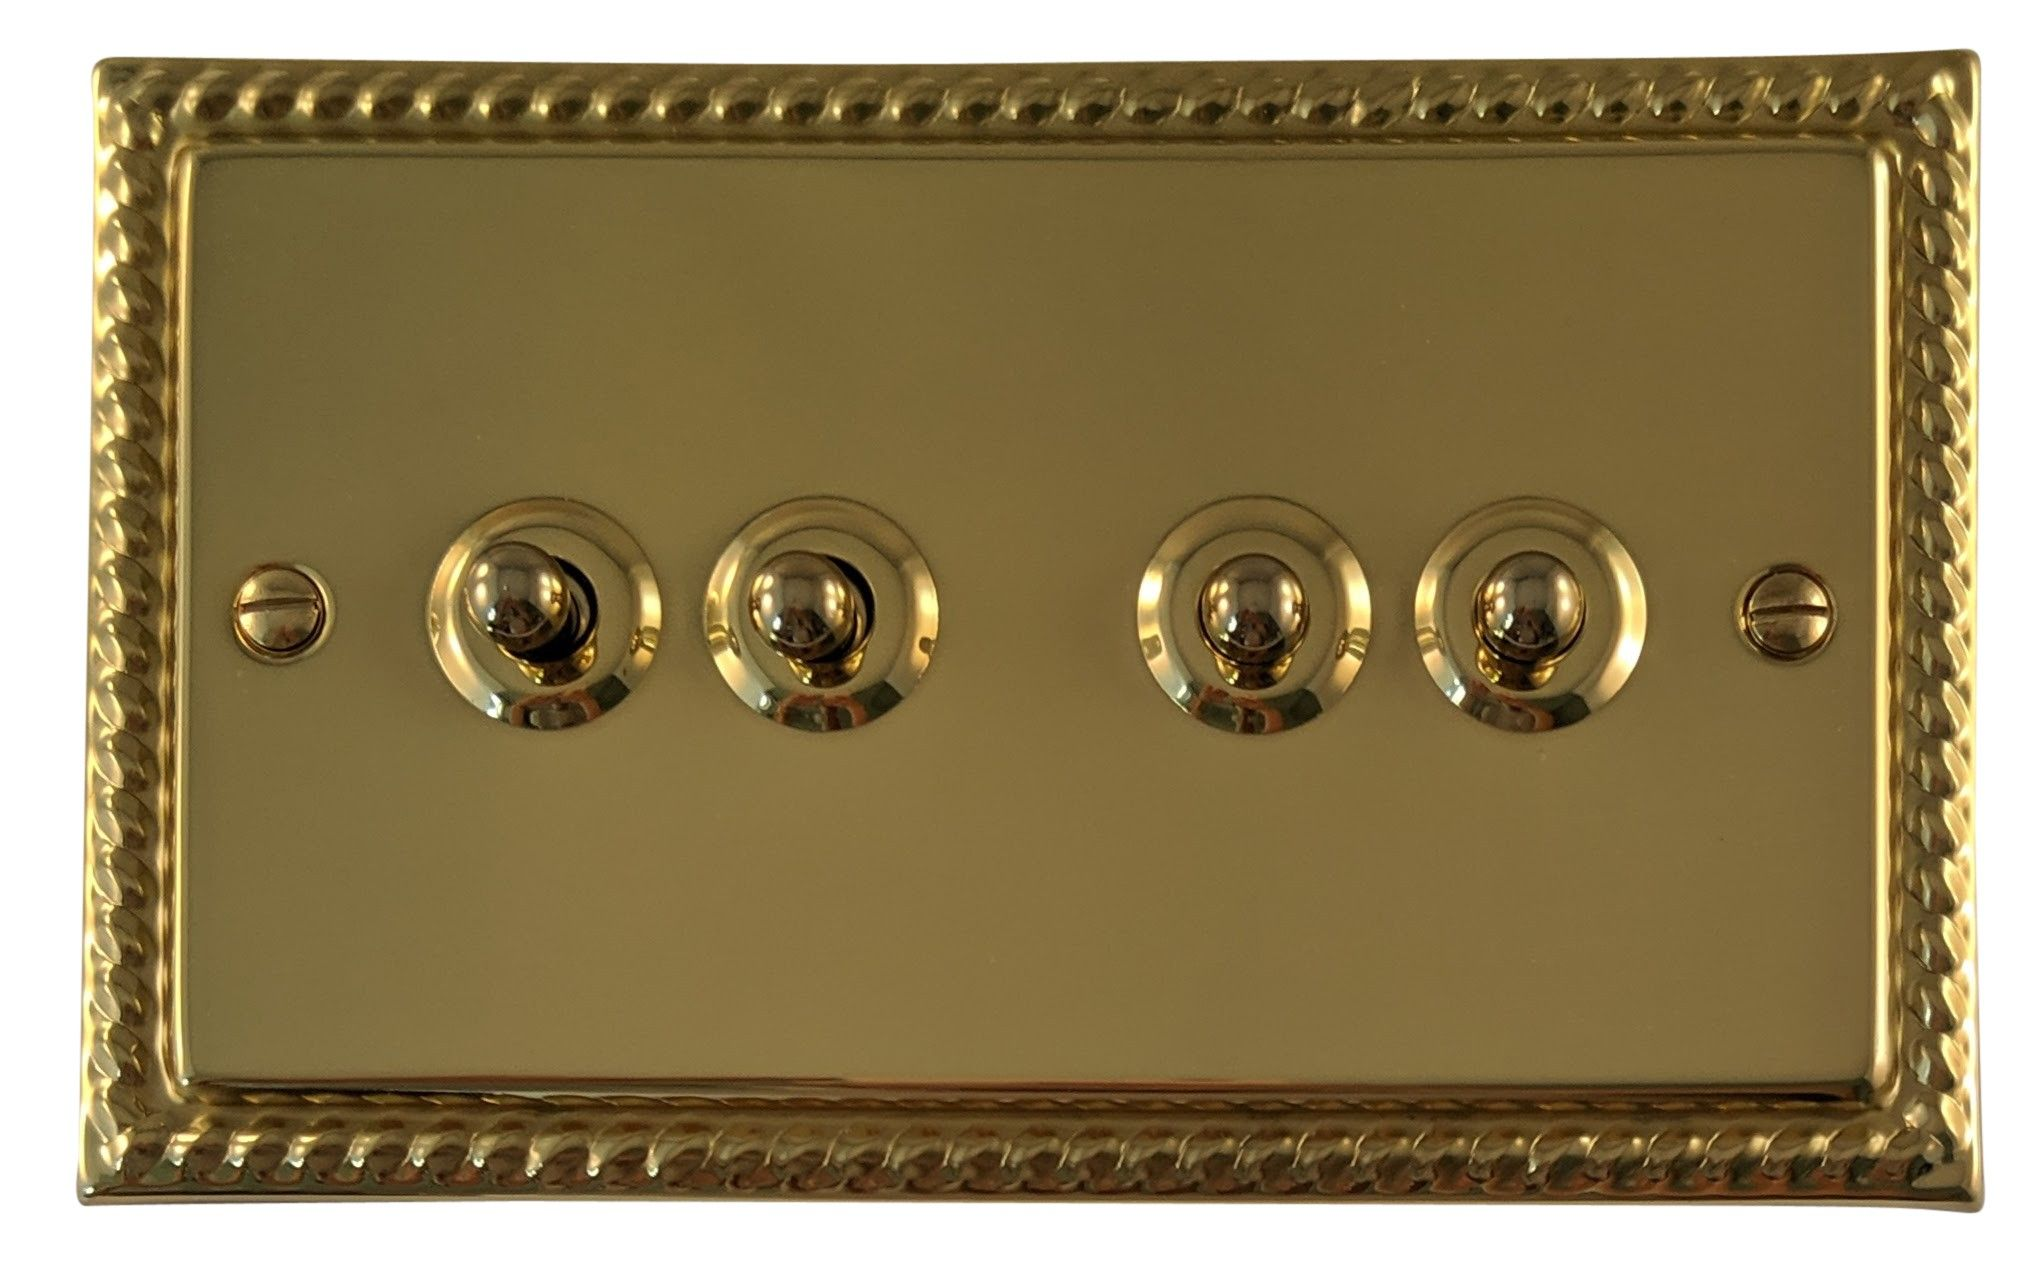 G&H MB284 Monarch Roped Polished Brass 4 Gang 1 or 2 Way Toggle Light Switch